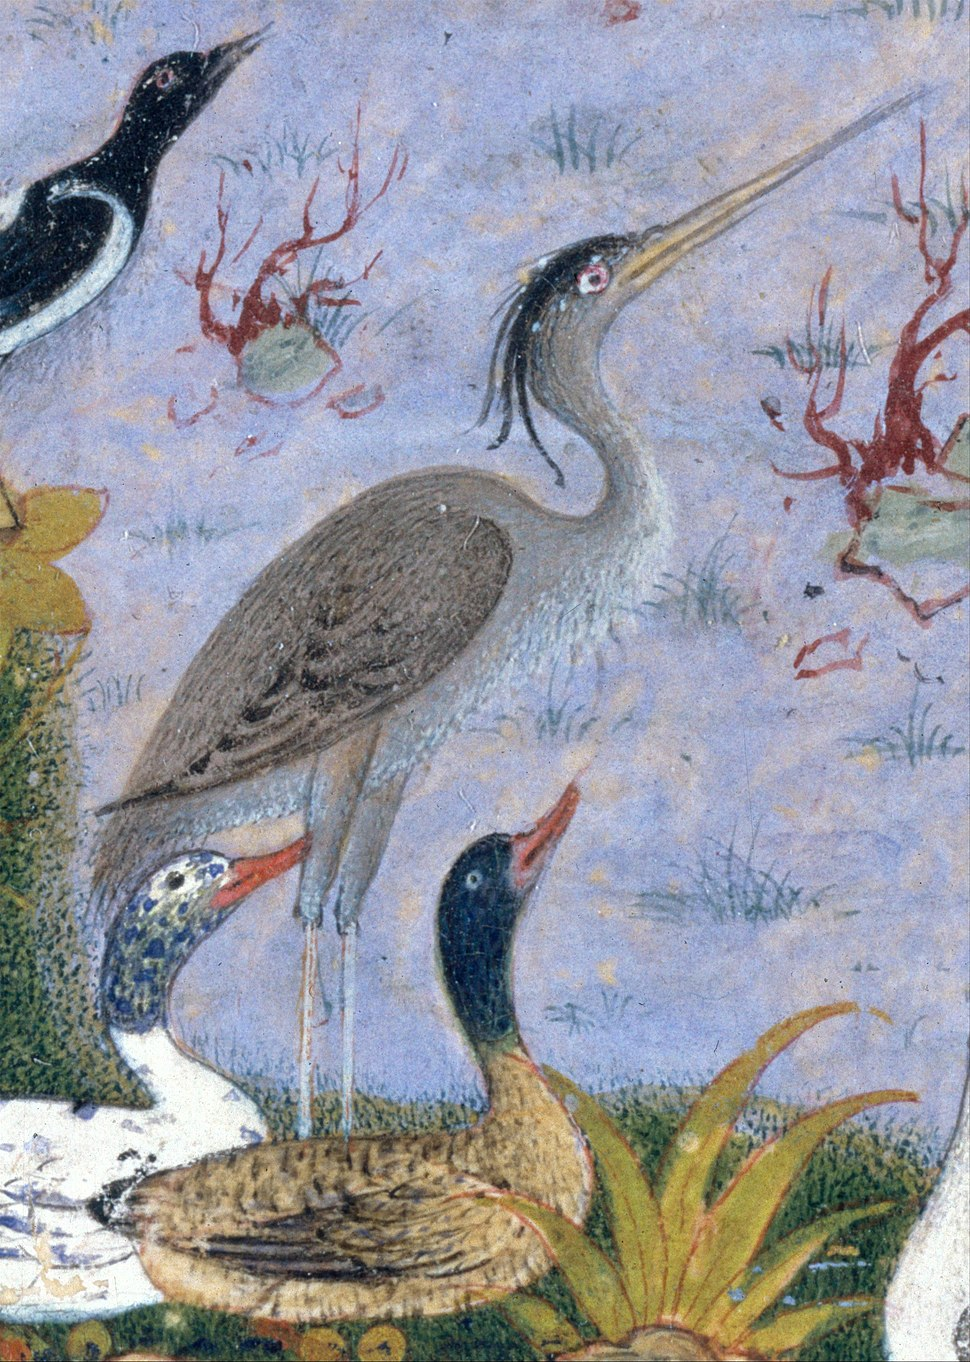 %22The Concourse of the Birds%22, Folio 11r from a Mantiq al-tair (Language of the Birds) MET DT227736